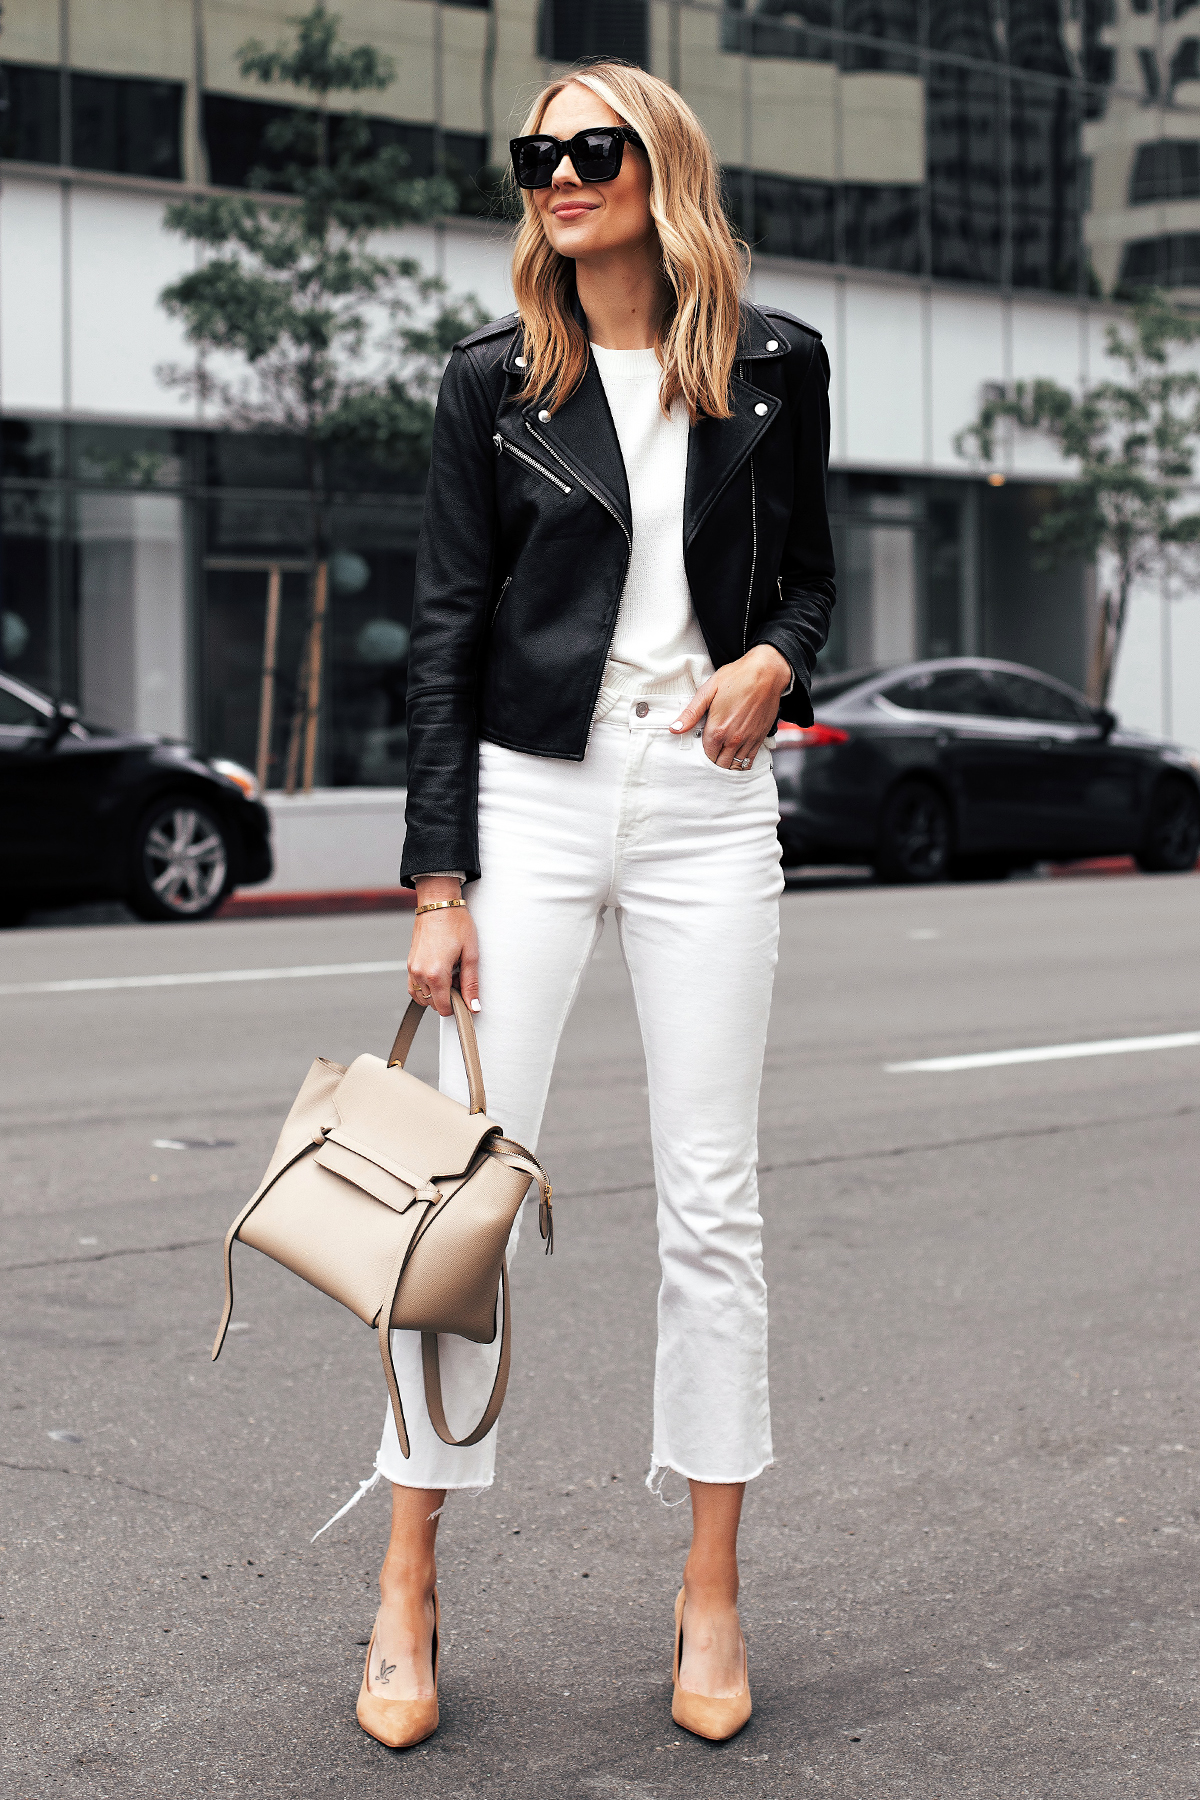 Fashion Jackson Capsule Wardrobe Wearing Club Monaco Black Leather Jacket White Sweater Everlane White Cropped Jeans Tan Pumps Celine Mini Belt Bag